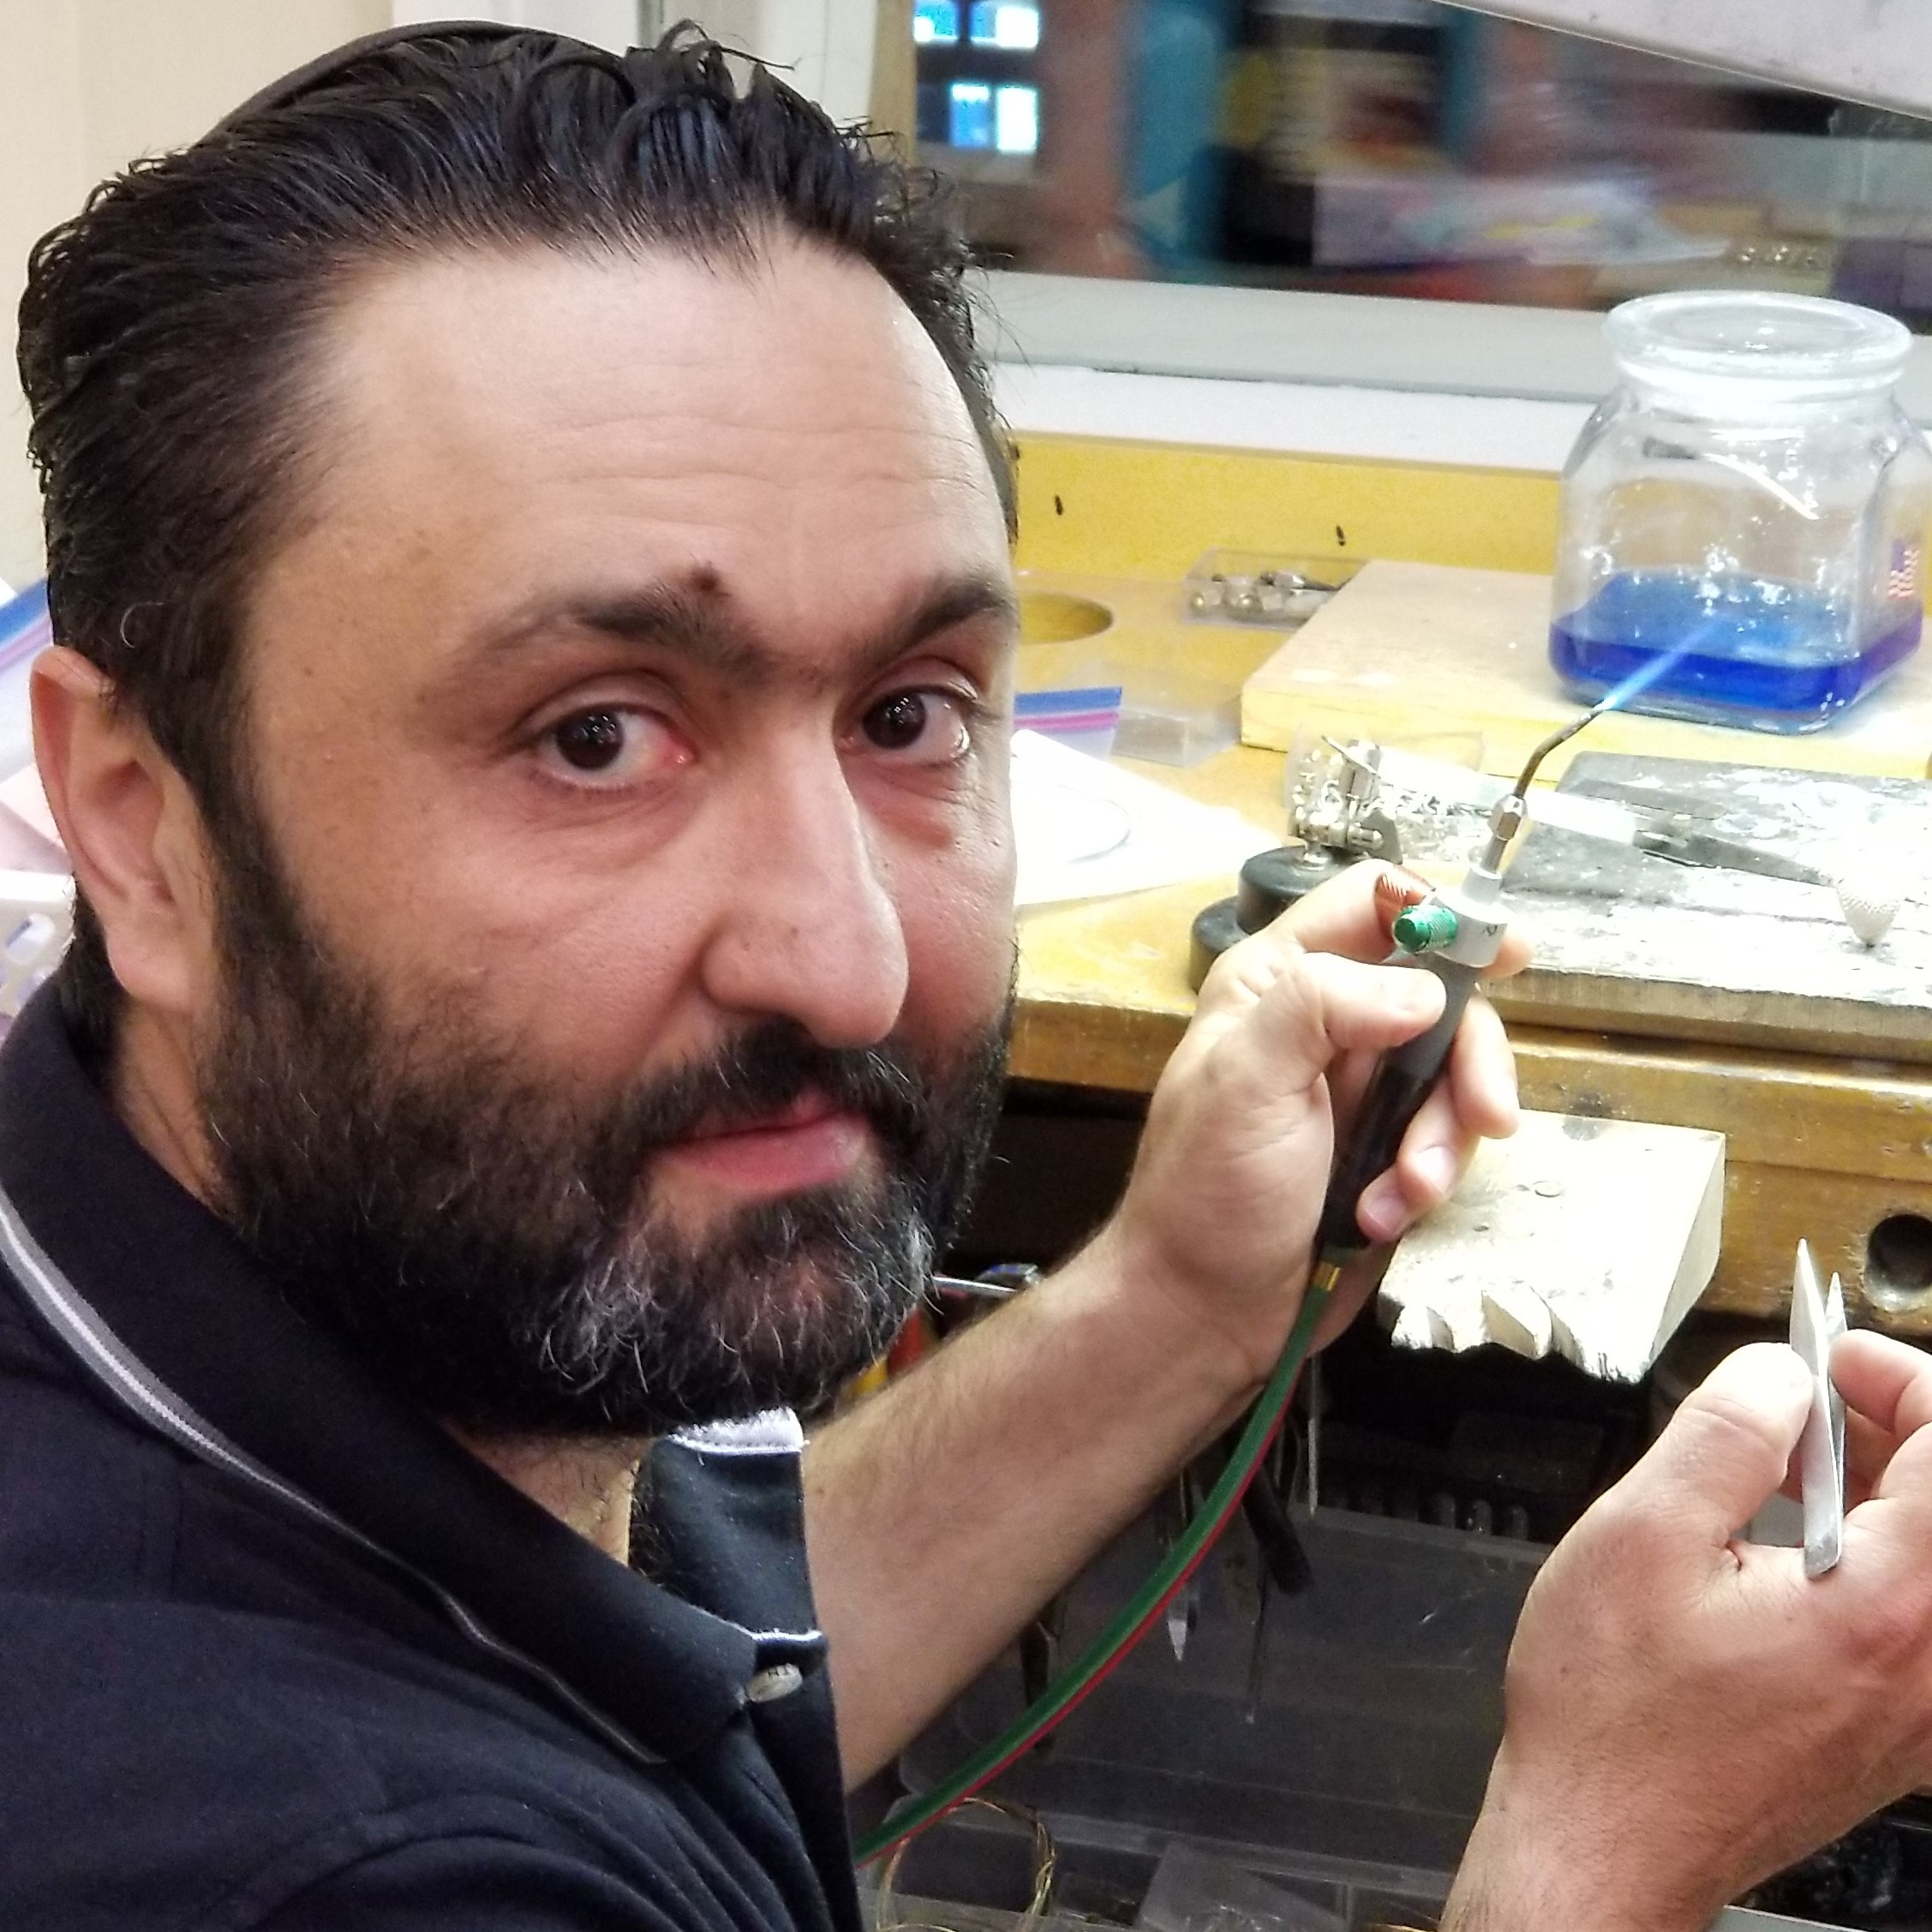 Michael Gadelov holds a jewelry torch and a pair of tweezers to complete a job at his Jewelers Bench